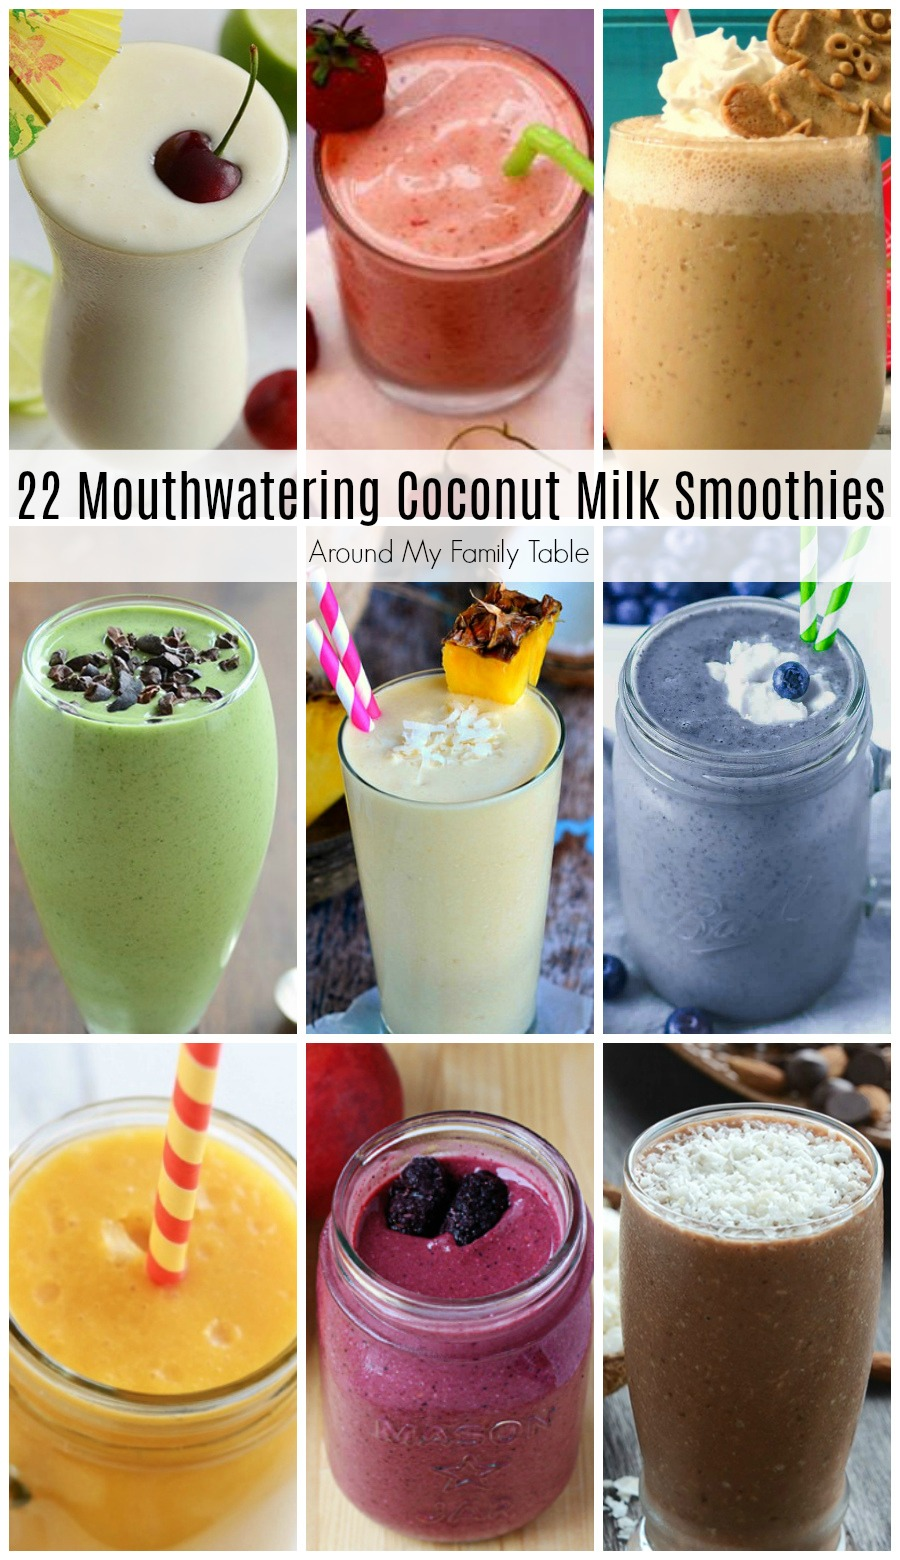 Try swapping coconut milk for dairy in your smoothies for a twist or try one of these Mouthwatering Coconut Milk Smoothies. #smoothies #coconutmilk  via @slingmama